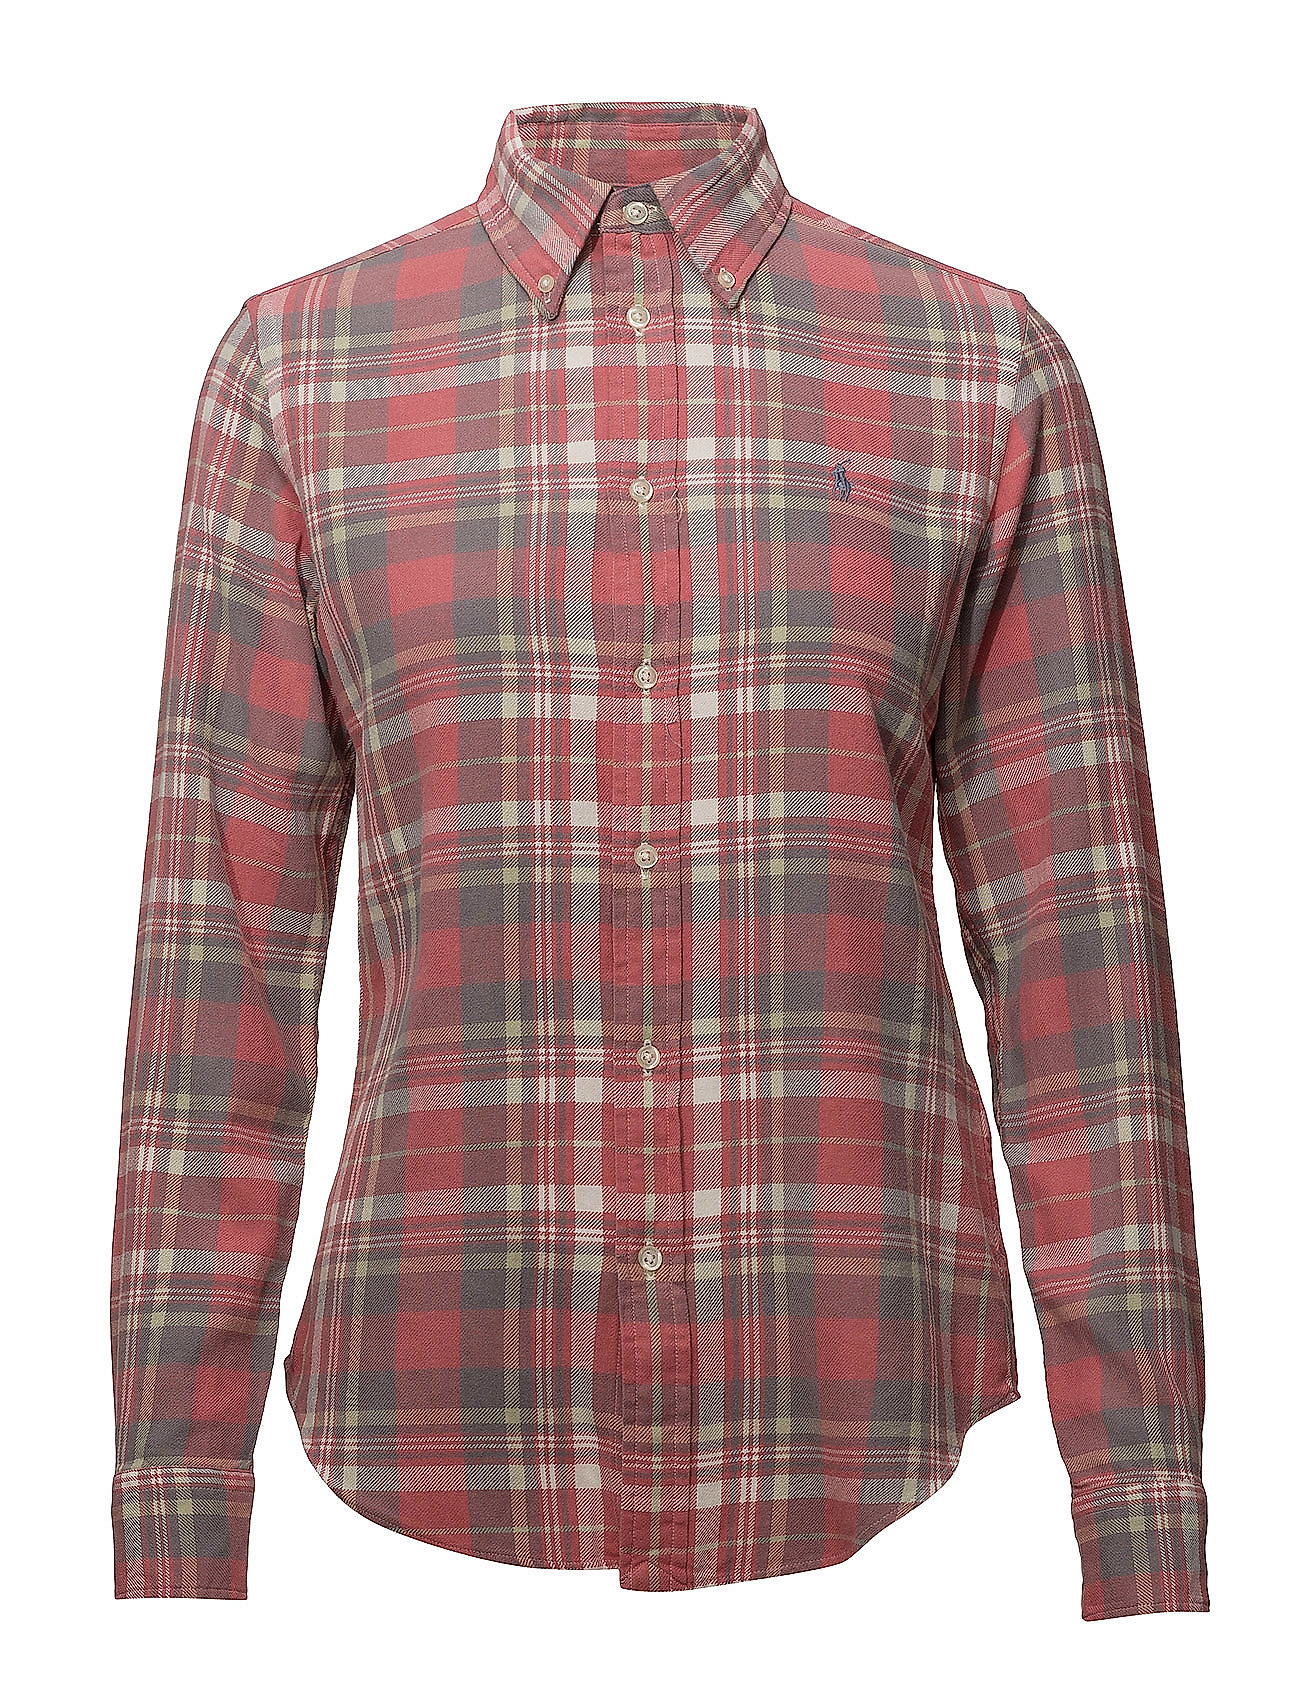 Polo Ralph Lauren Classic Fit Cotton Plaid Shirt